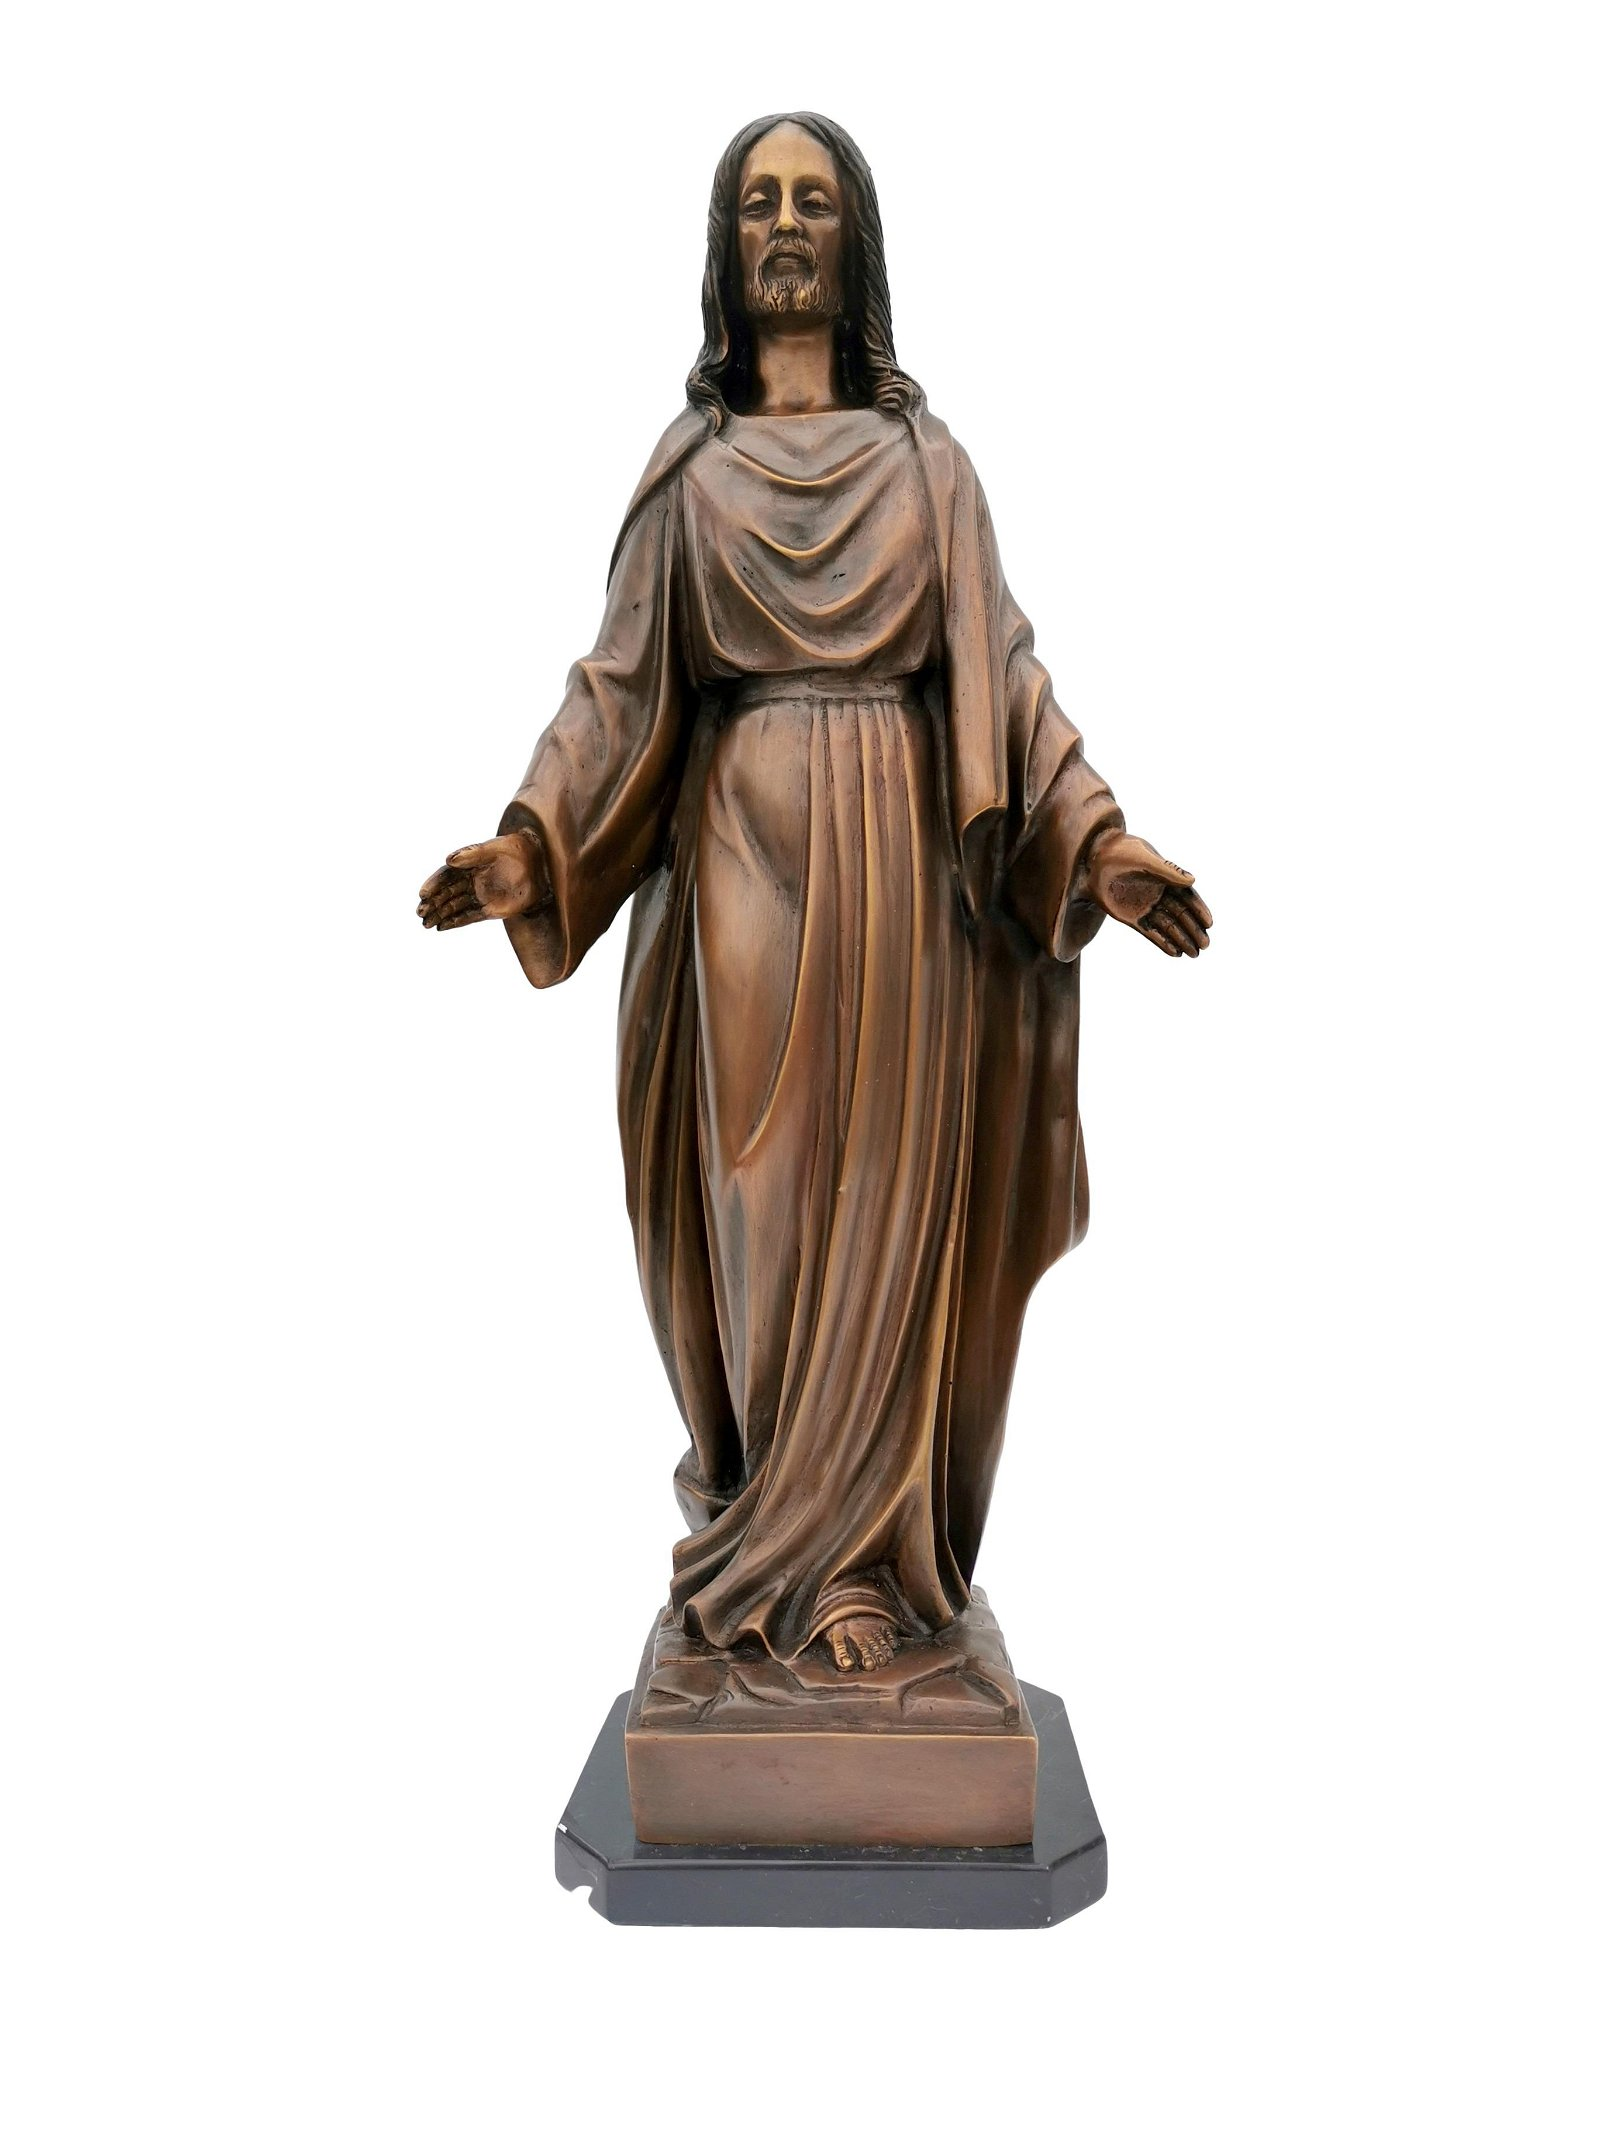 Large bronze sculpture of Jesus our lord - Messiah